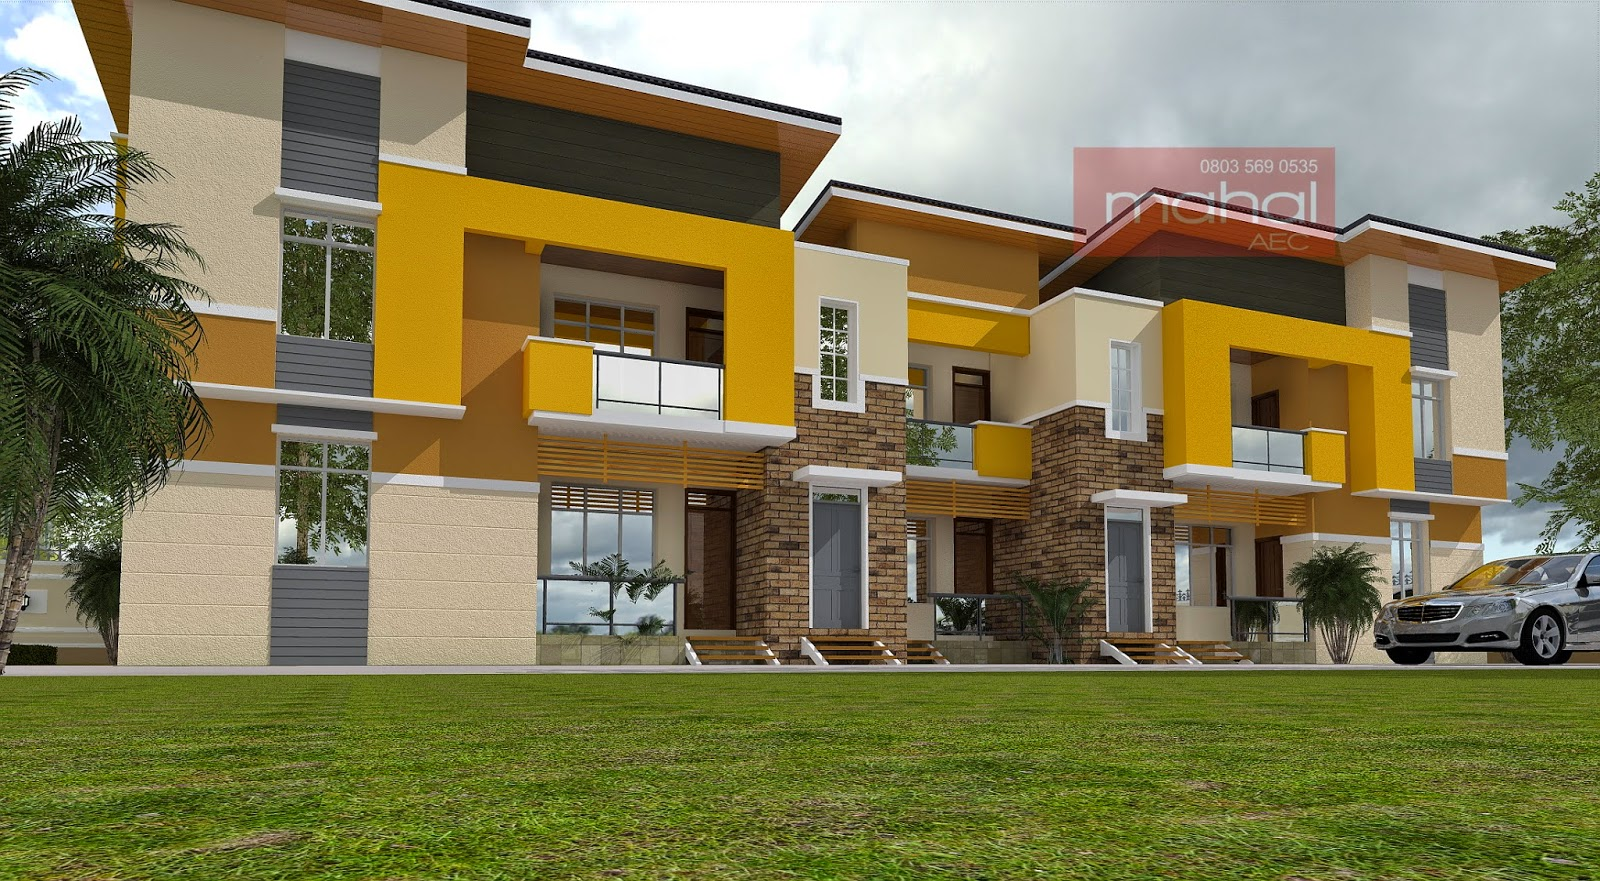 Contemporary nigerian residential architecture - Architecture plans of bedroom flat ...